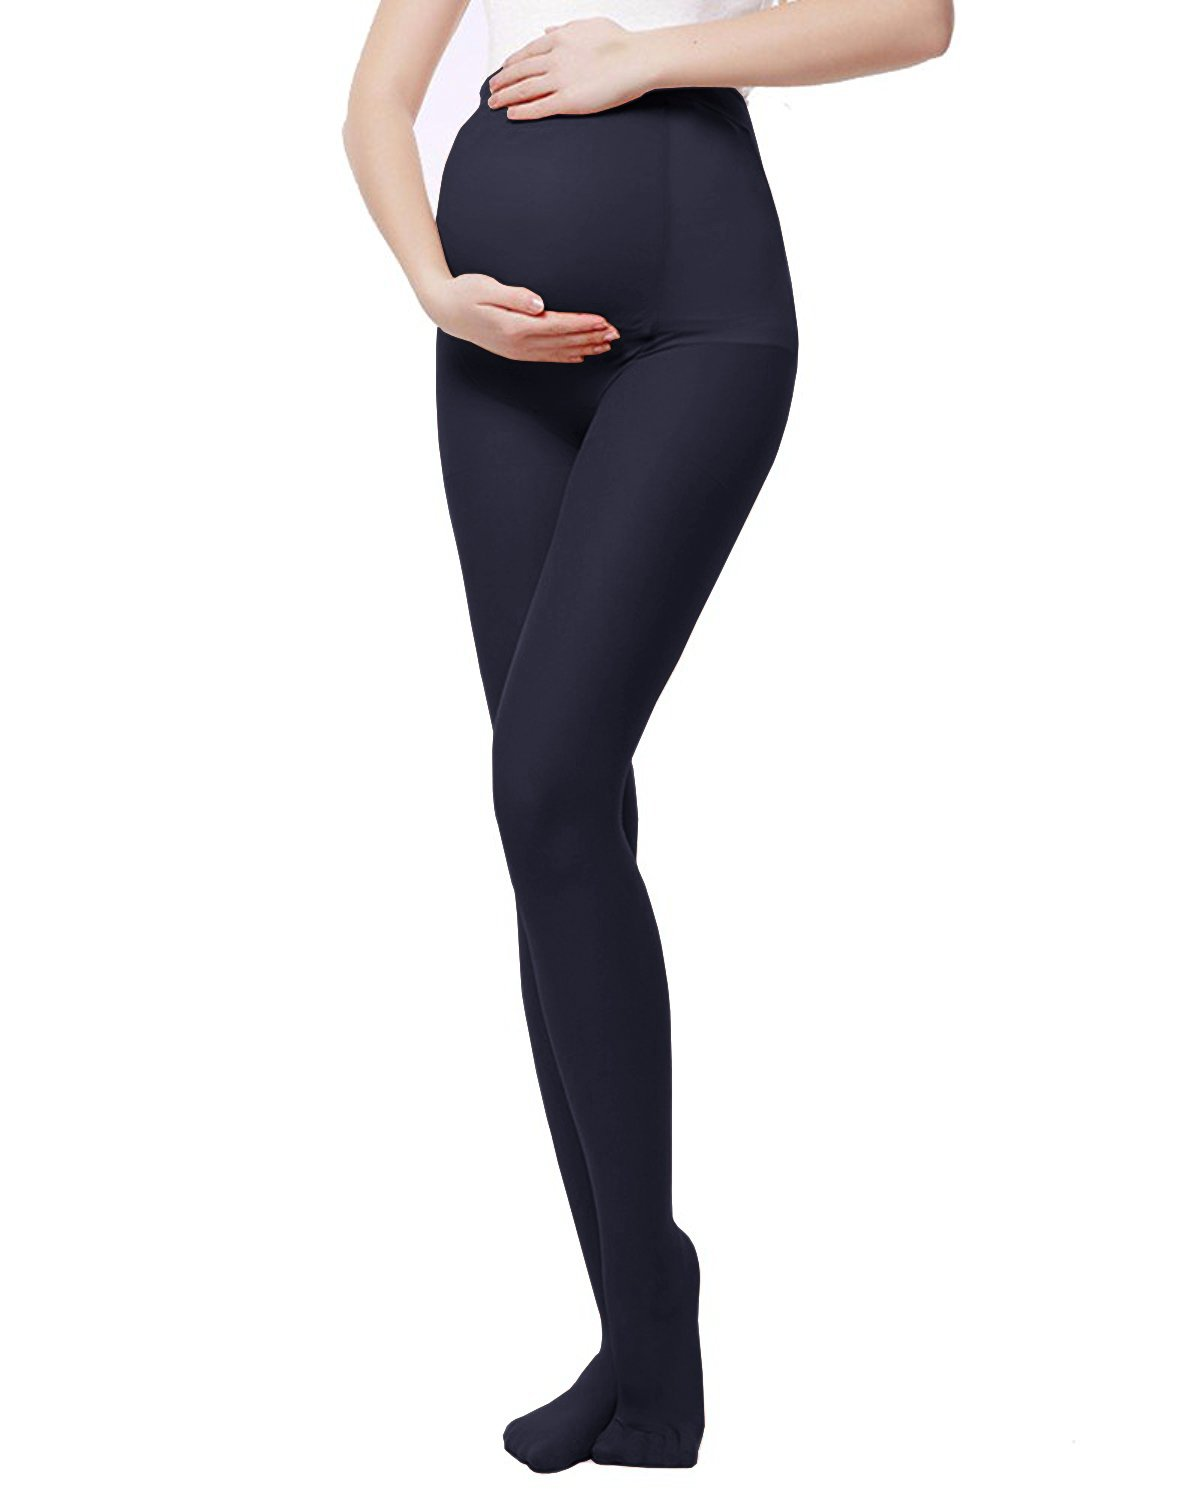 L&ZZ Opaque Maternity Tights - Super Comfortable Support Pantyhose for All Stages of Pregnancy Tights